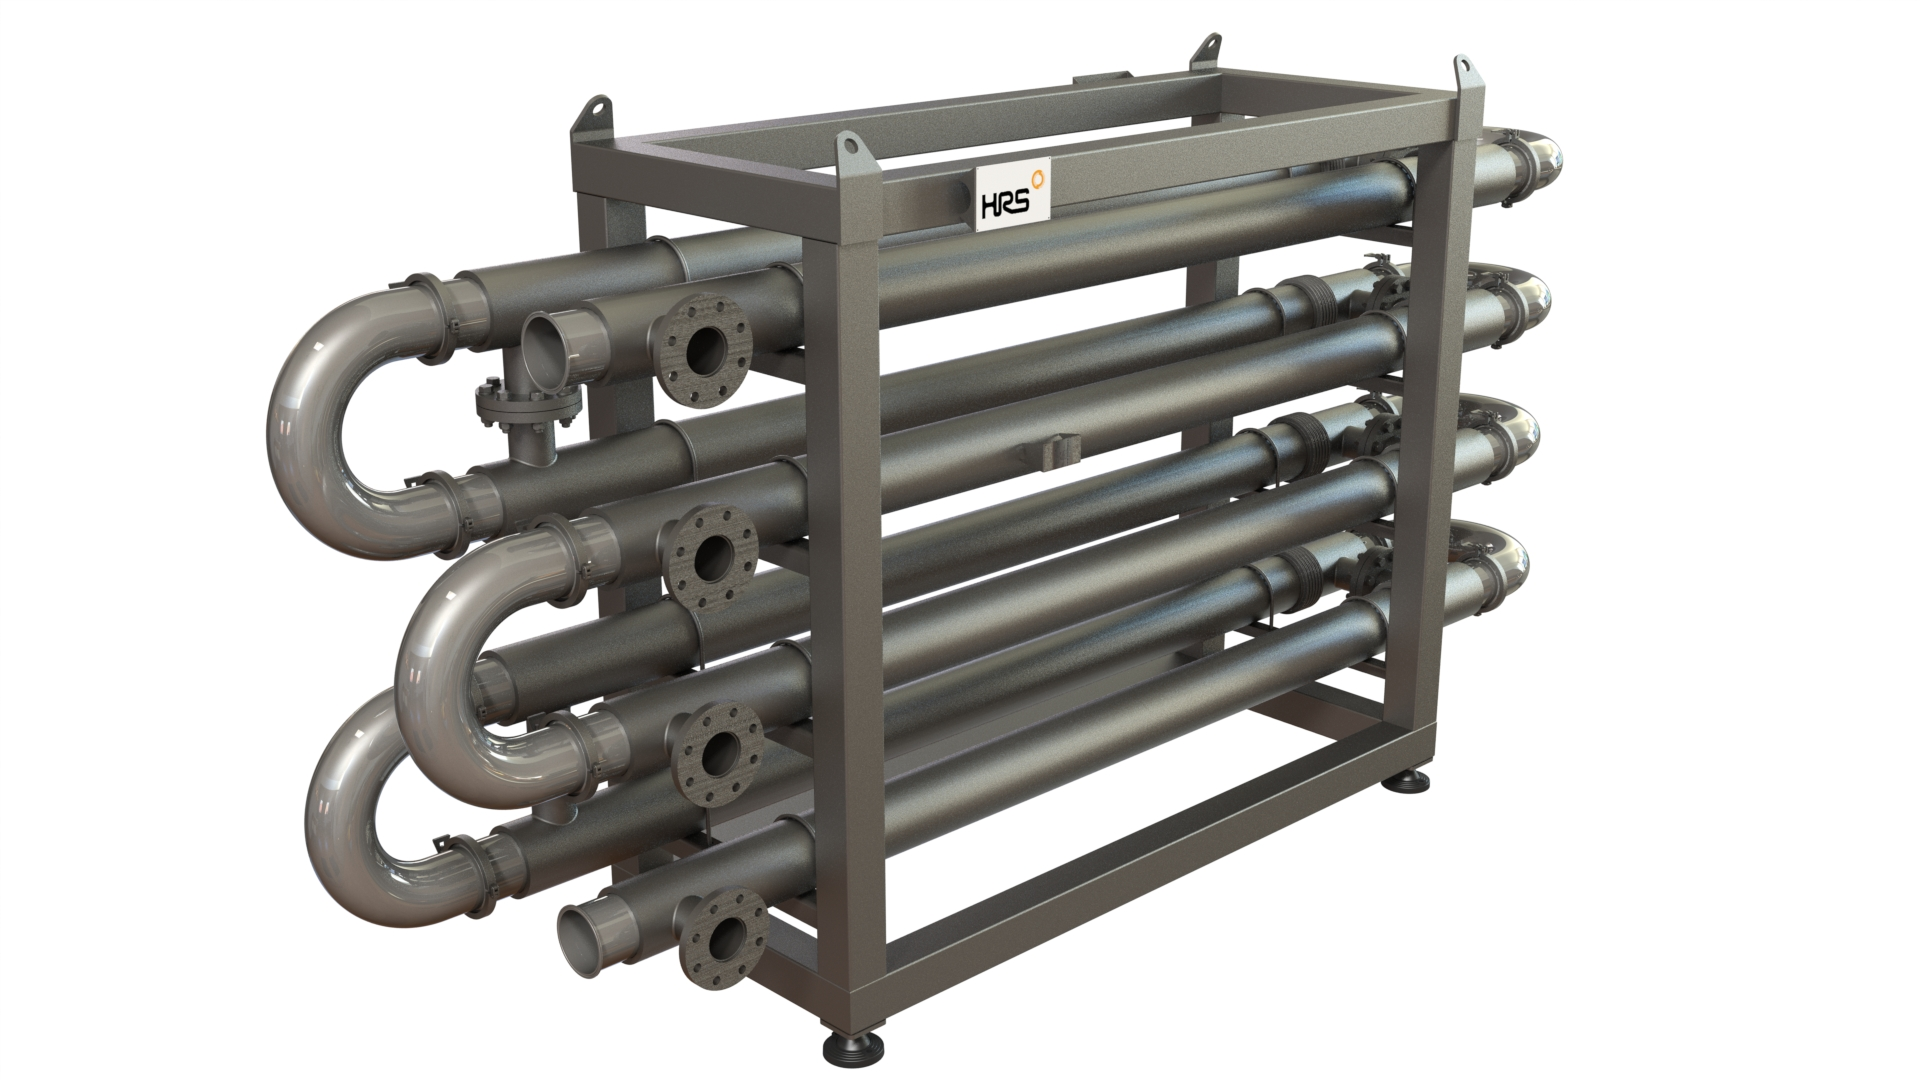 _HRS DTA Series Hygienic Double Tube Heat Exchanger